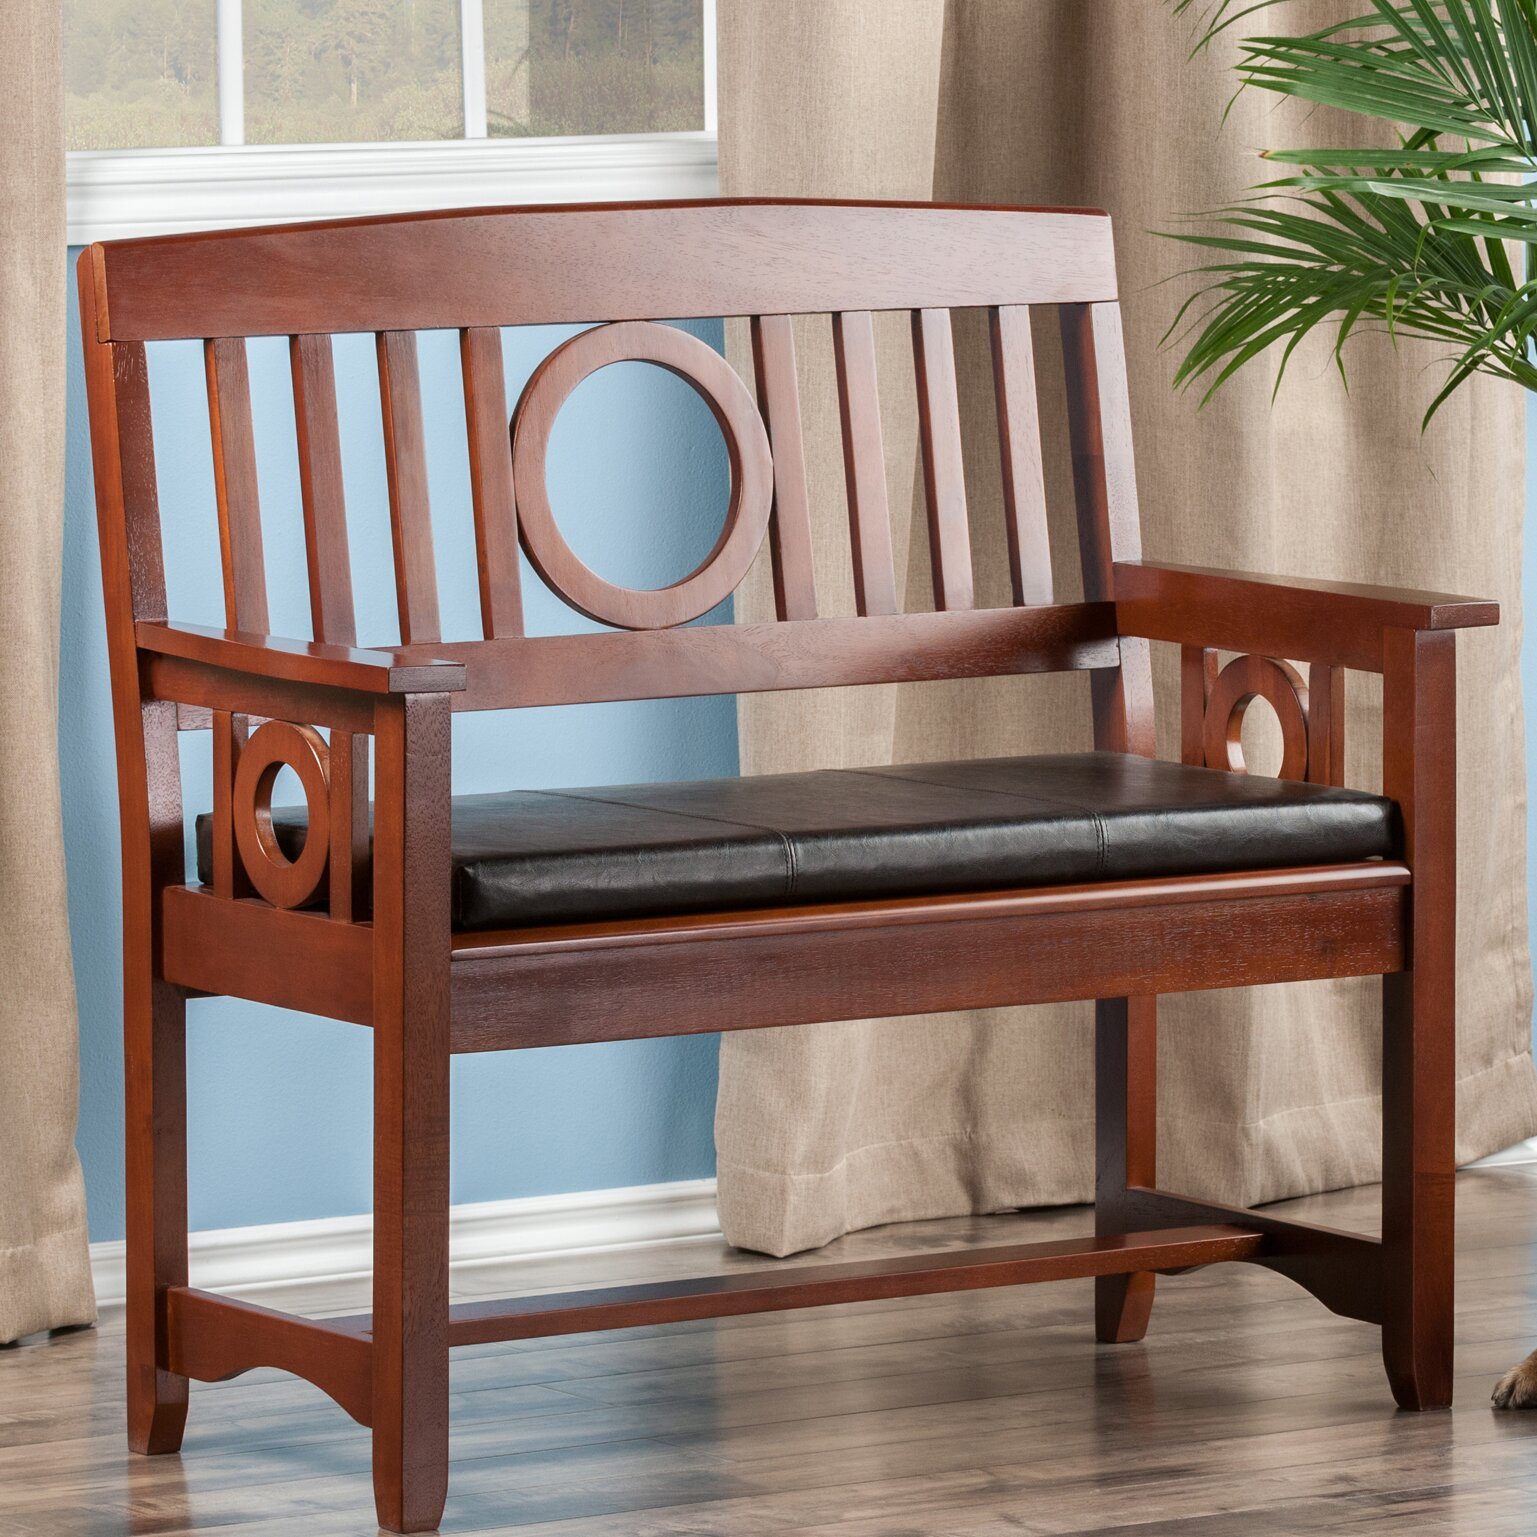 Alcott Hill Maineville Wood Entryway Bench & Reviews